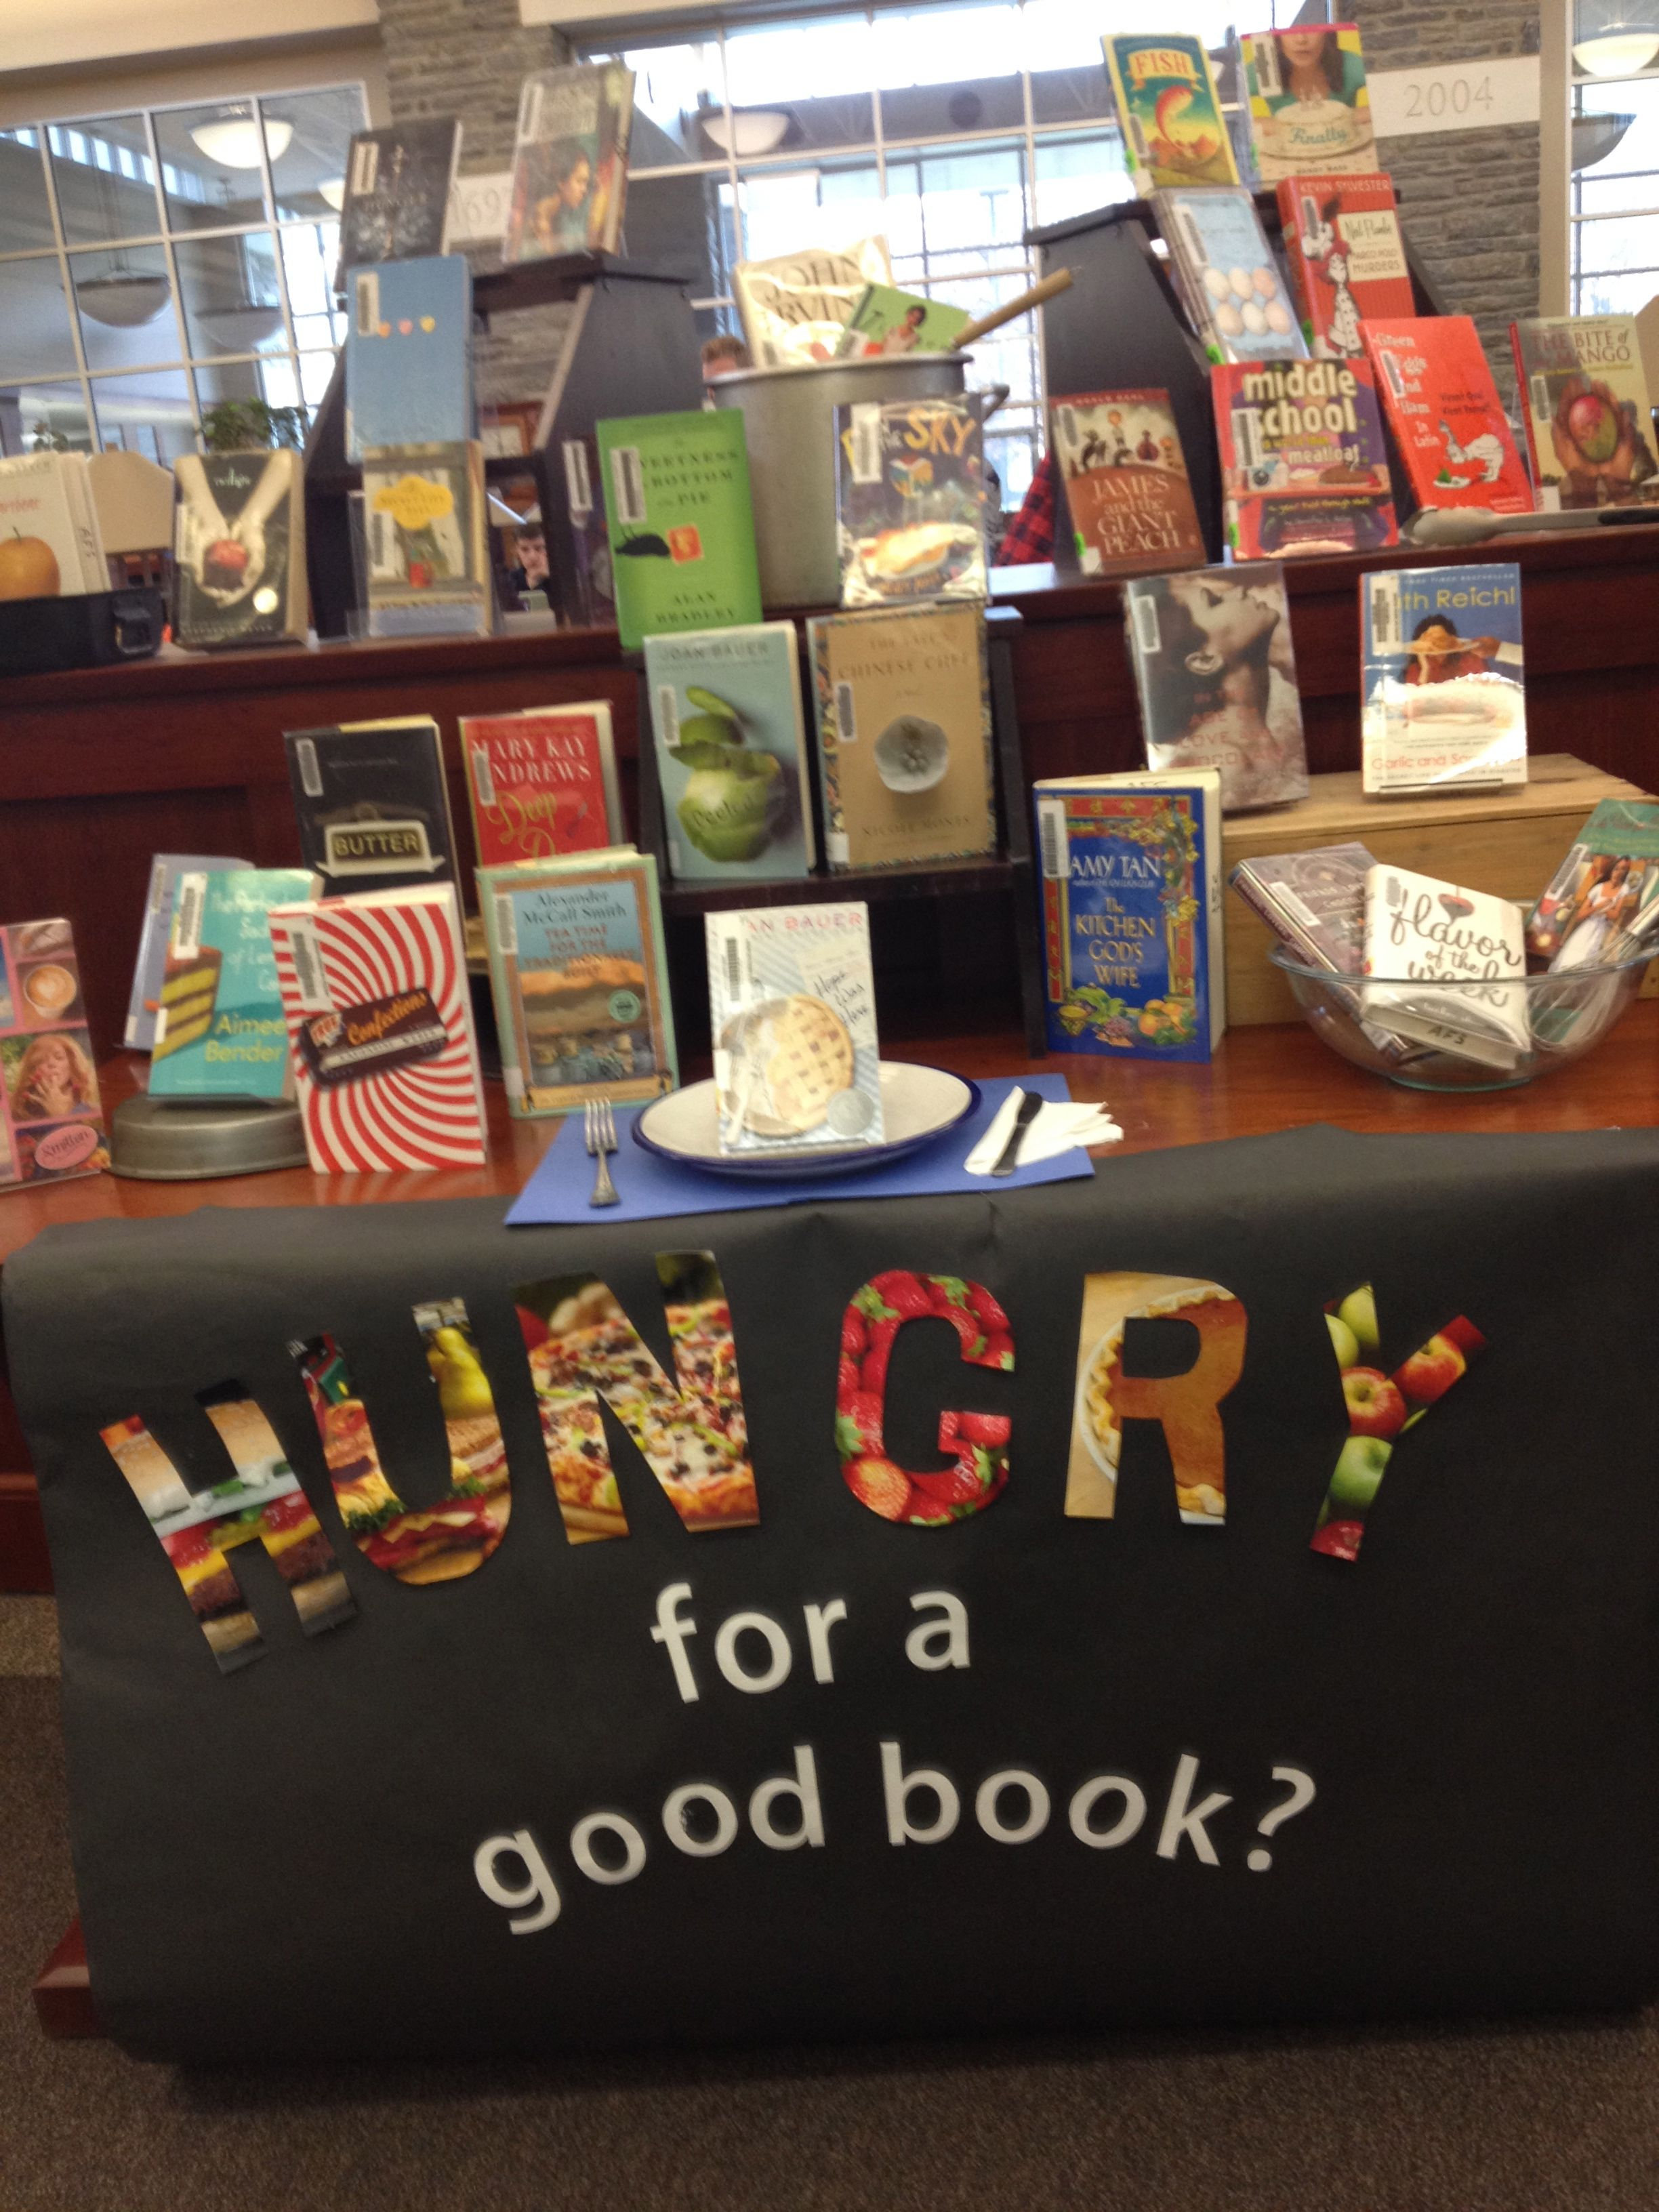 Hungry Good Book #librarydisplays #tlchat